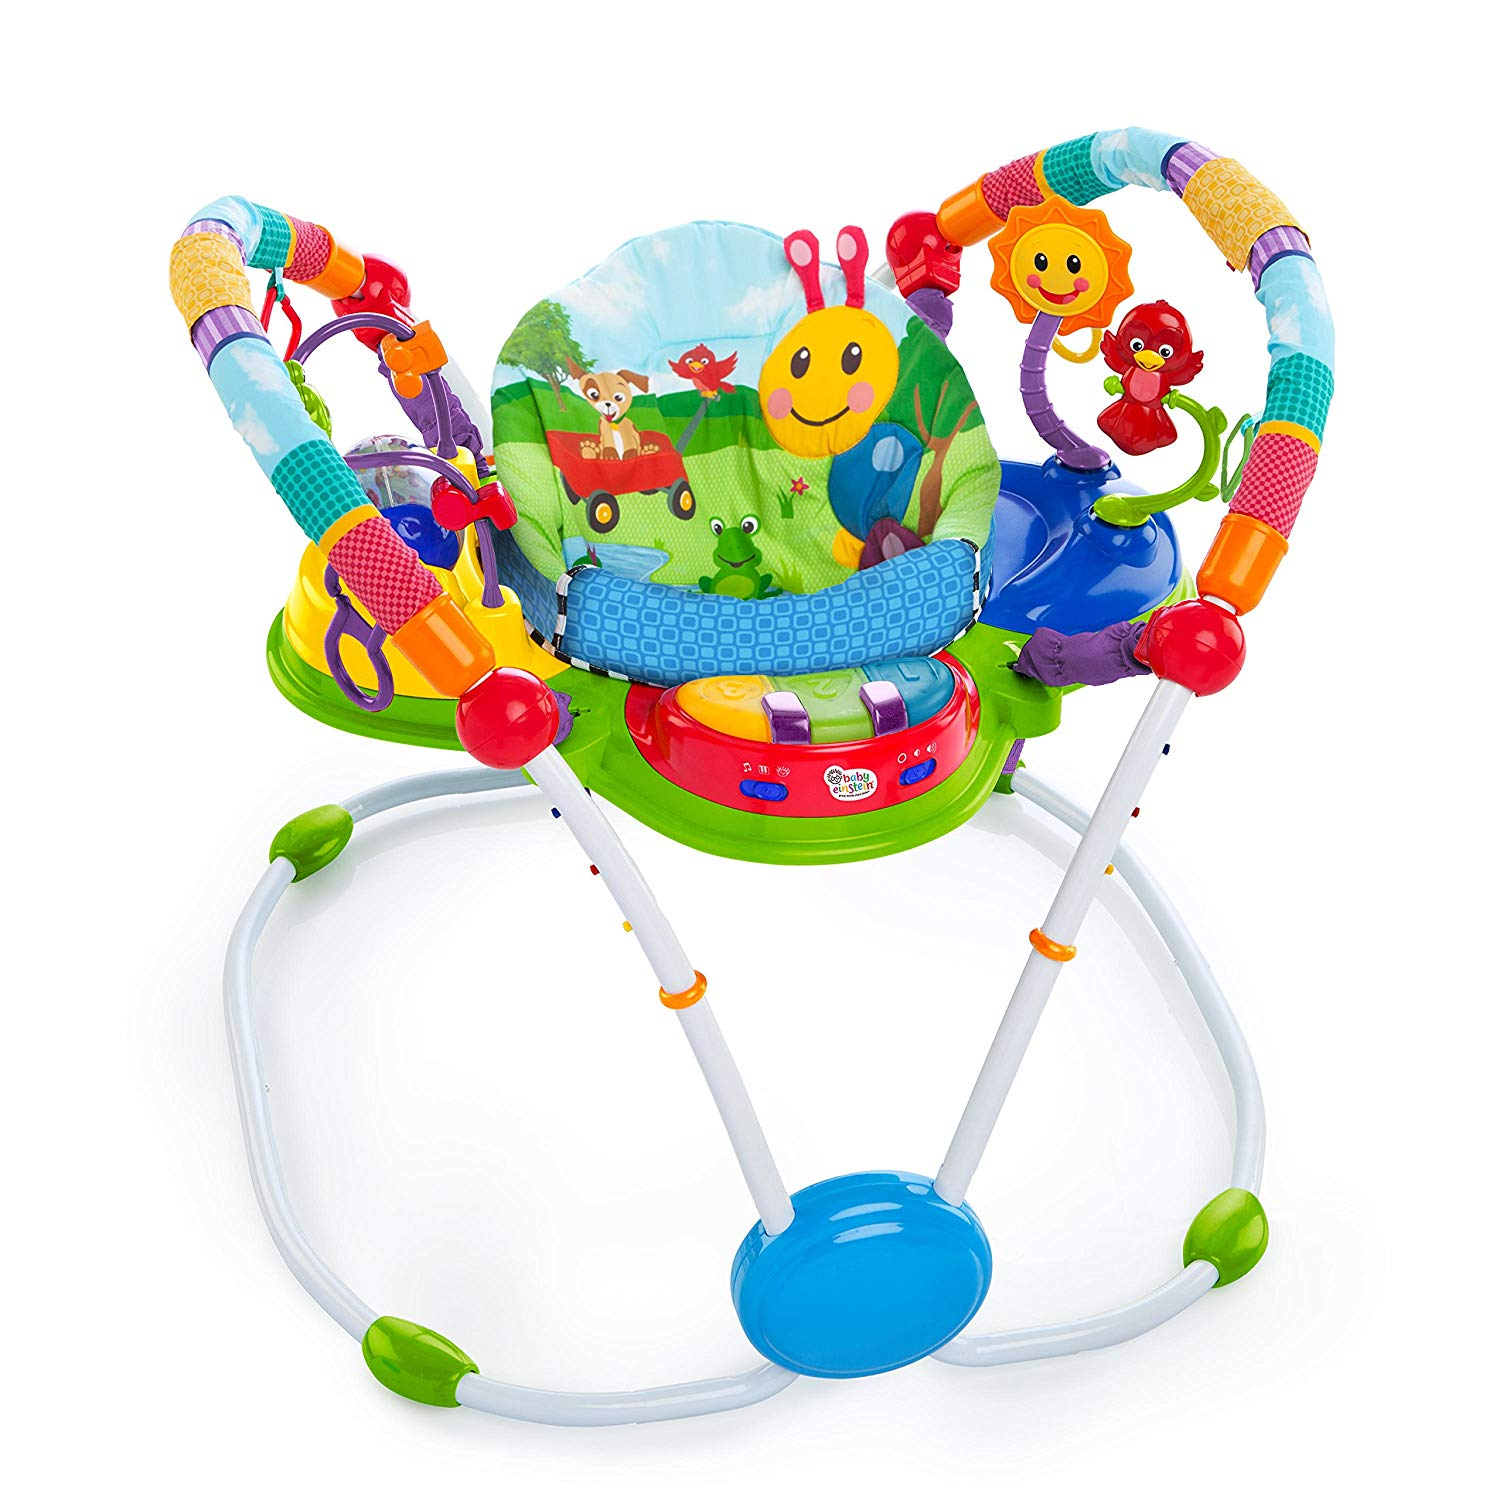 best baby toys, baby Einstein, baby jumper, baby activity center